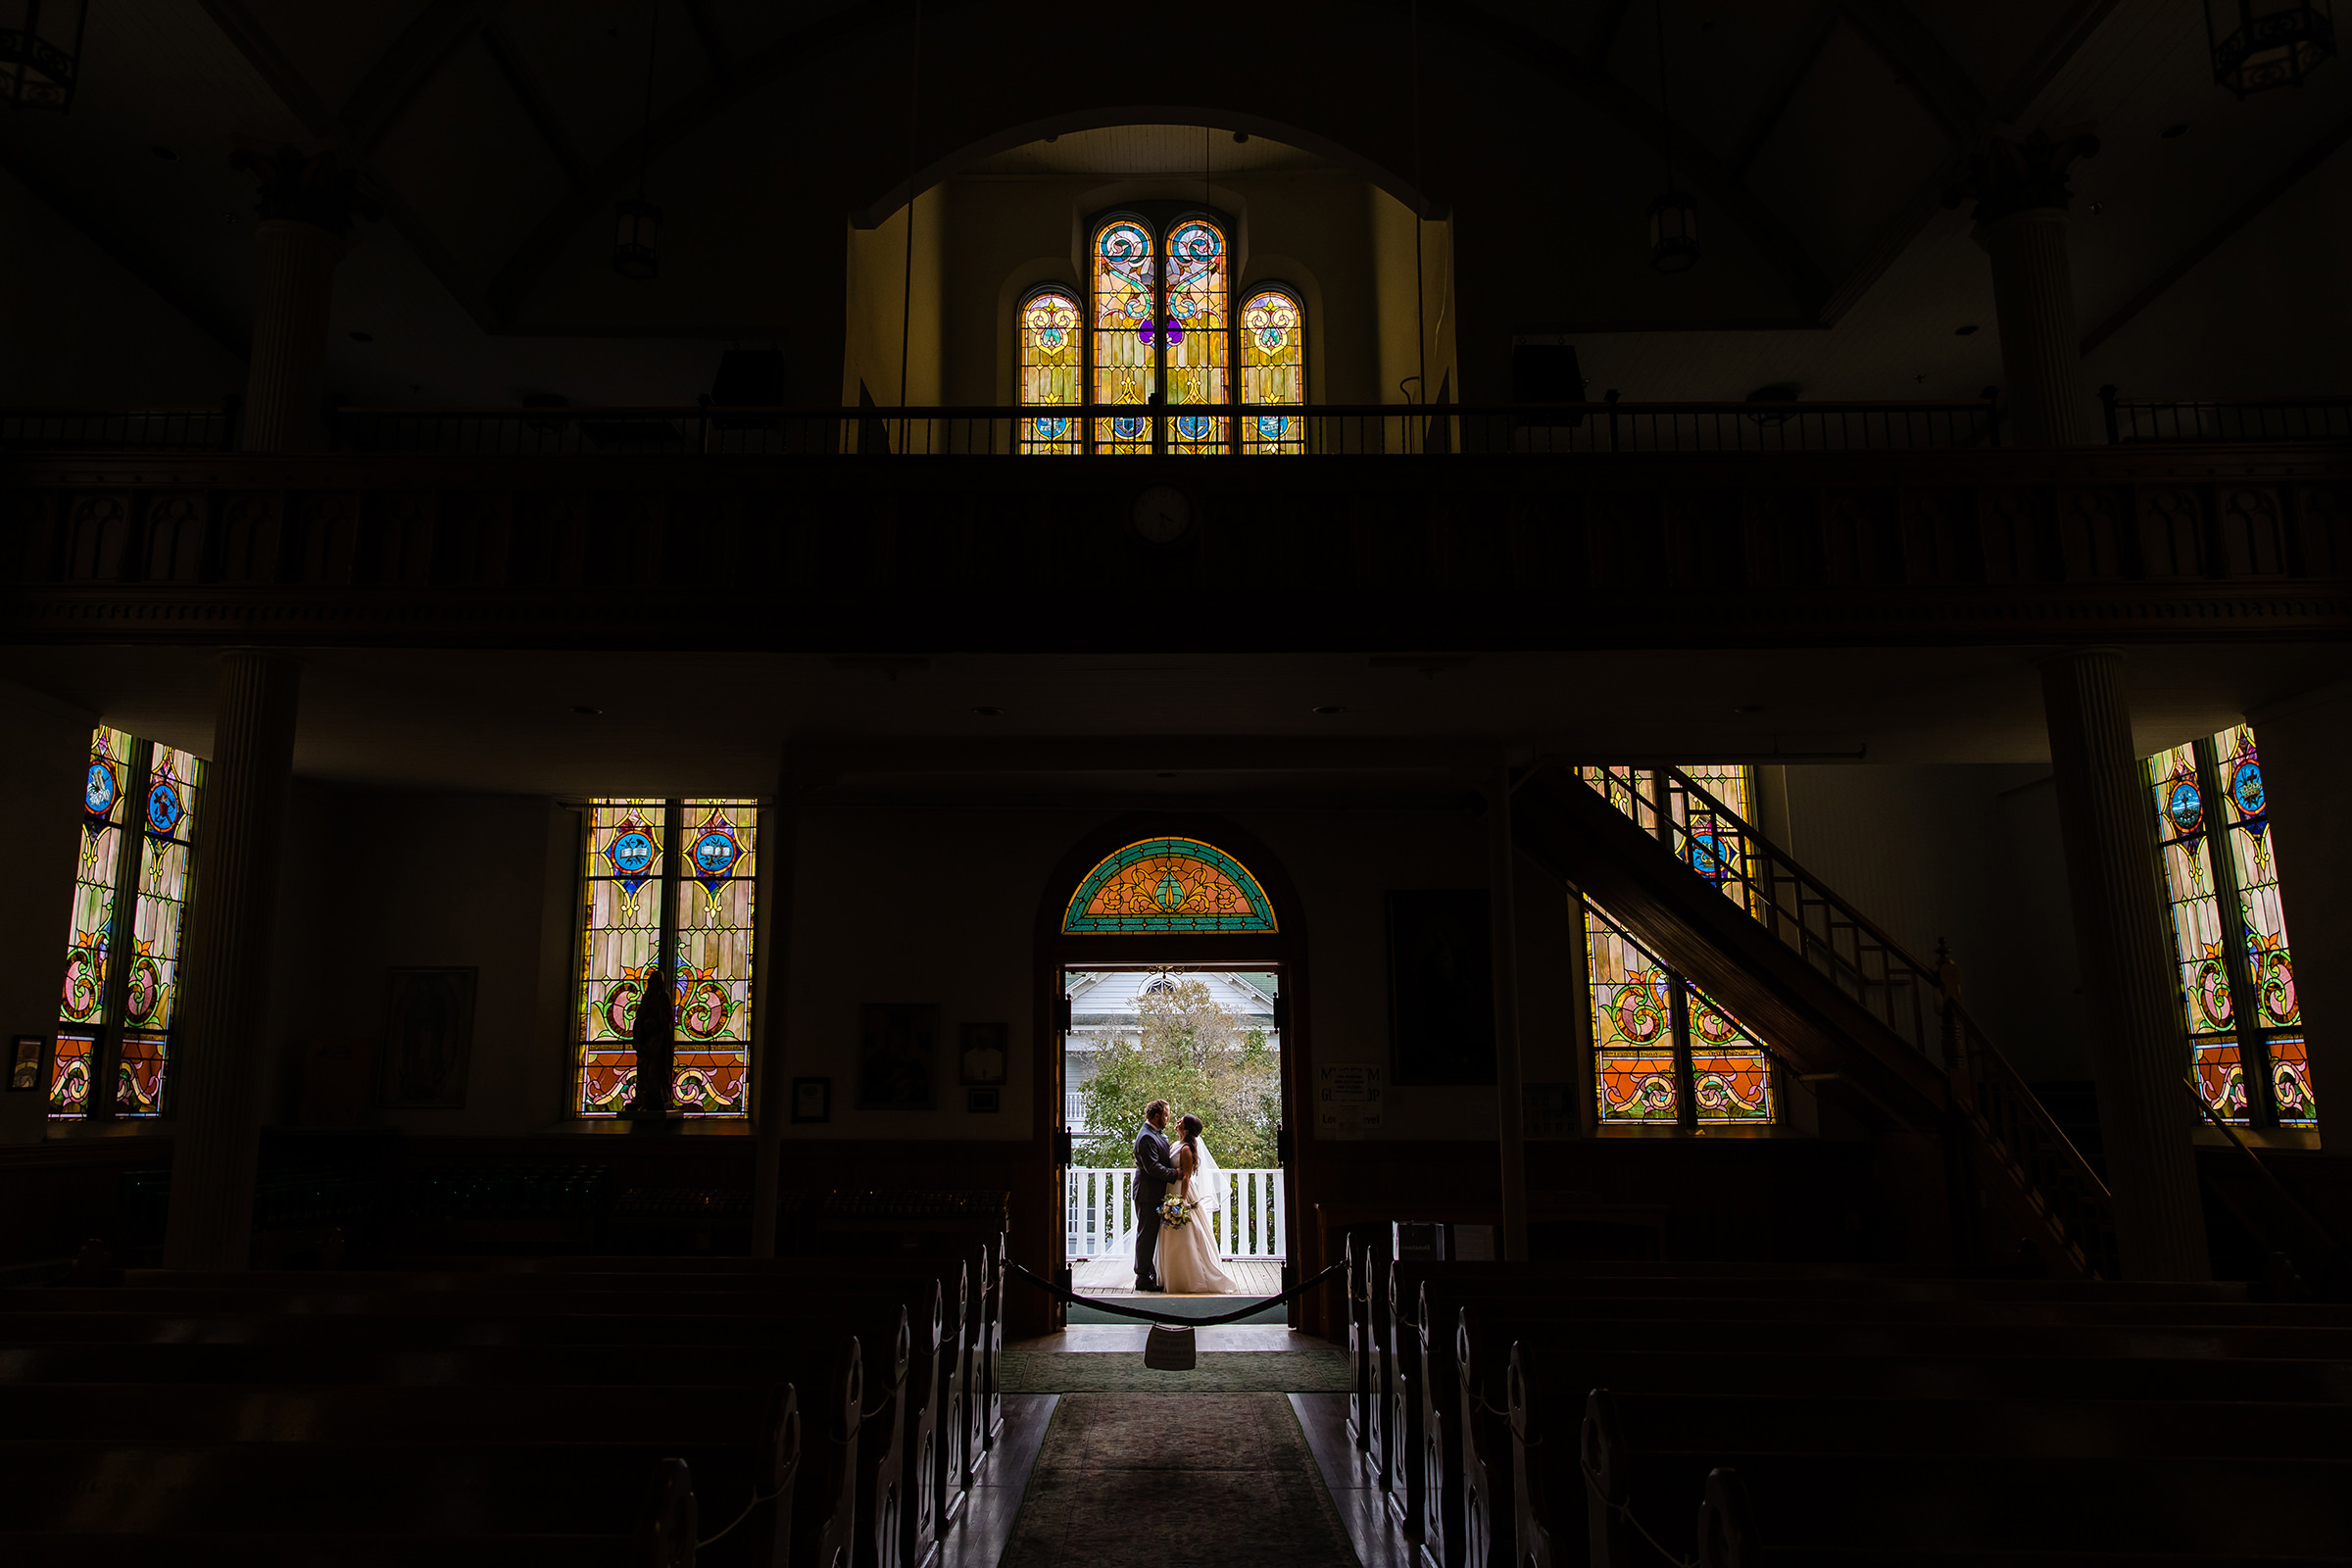 Couple in church doorway with stained glass - photo by Rayan Anastor Photography